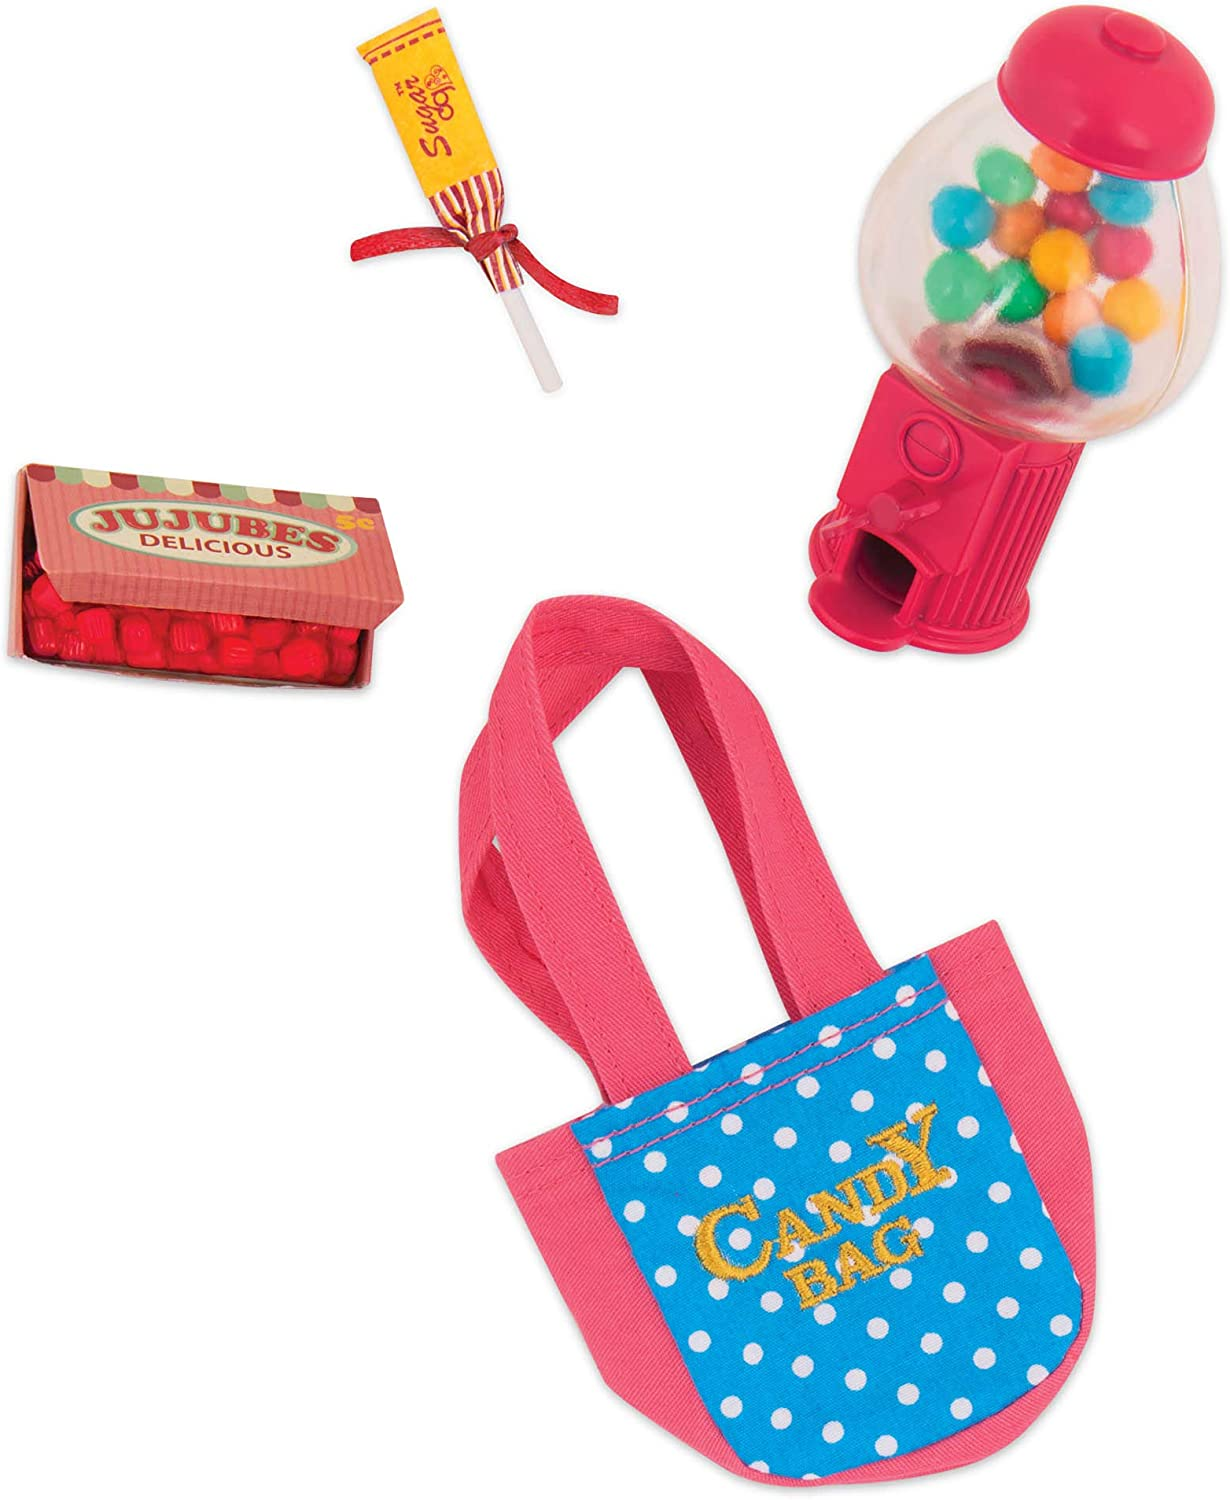 Our Generation - Retro Candy Set.